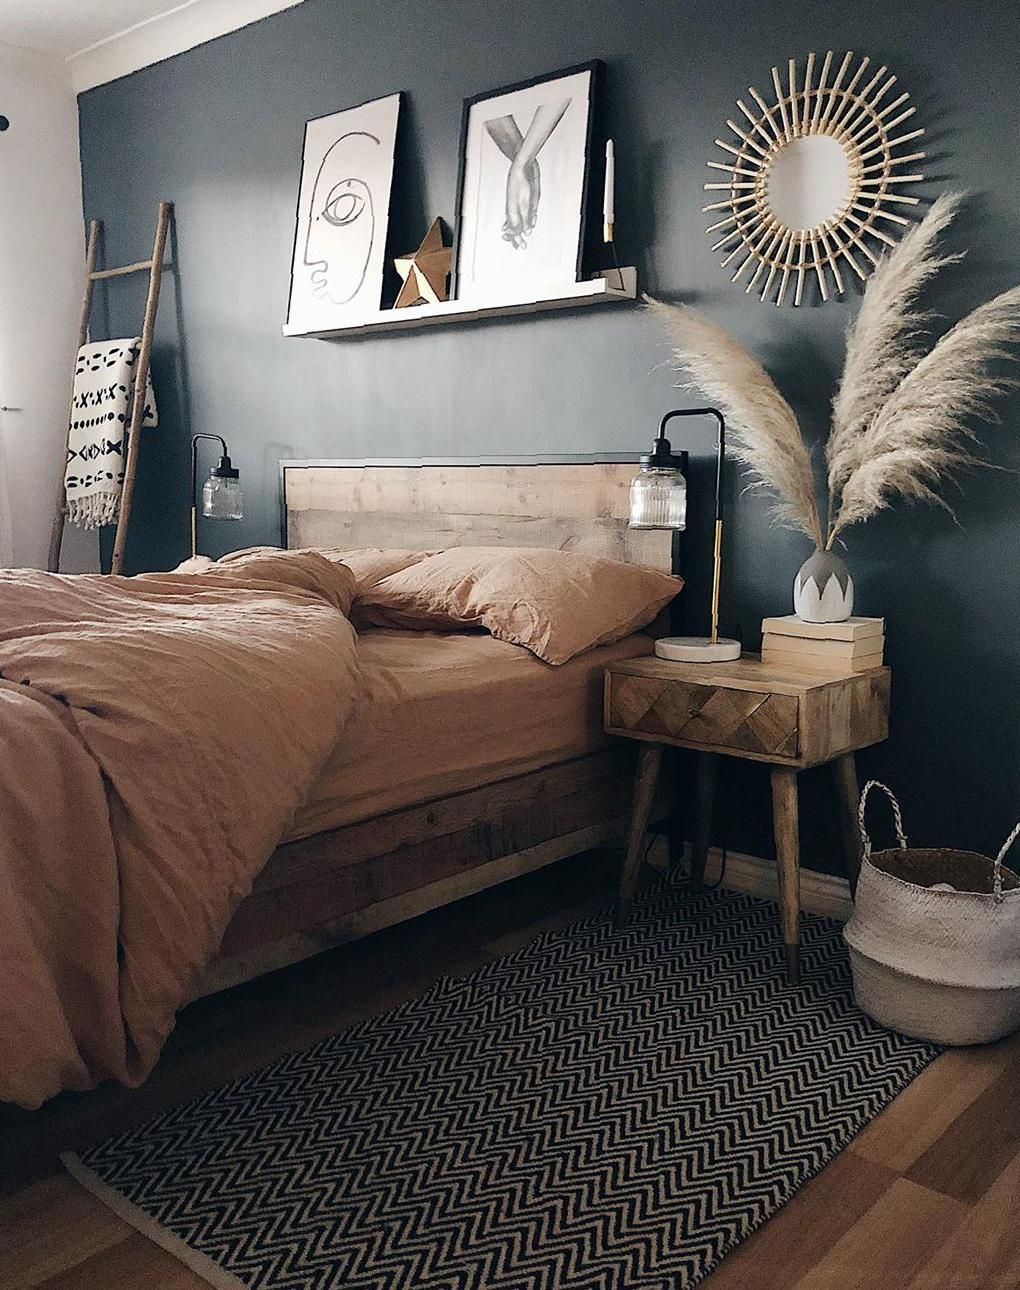 Pin On Home Design Ideas Most popular first home bedroom ideas